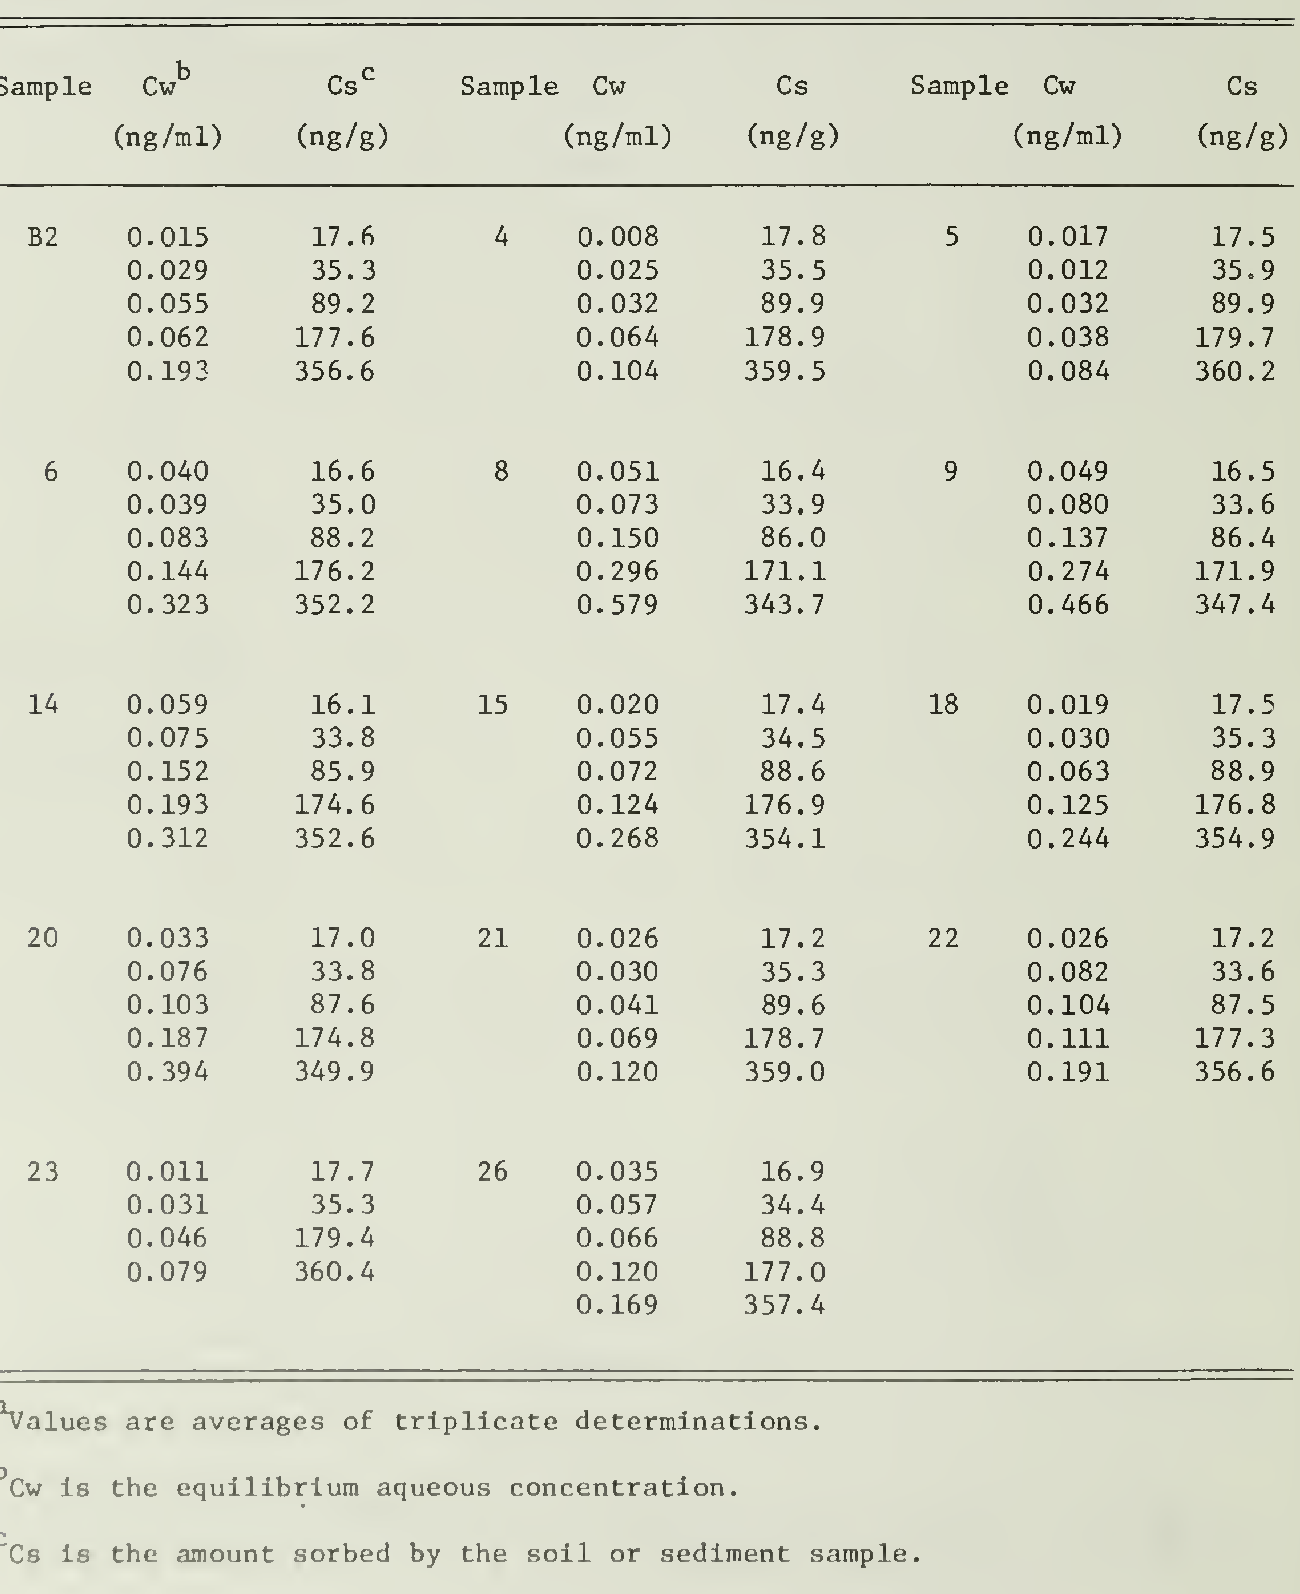 table 4.41